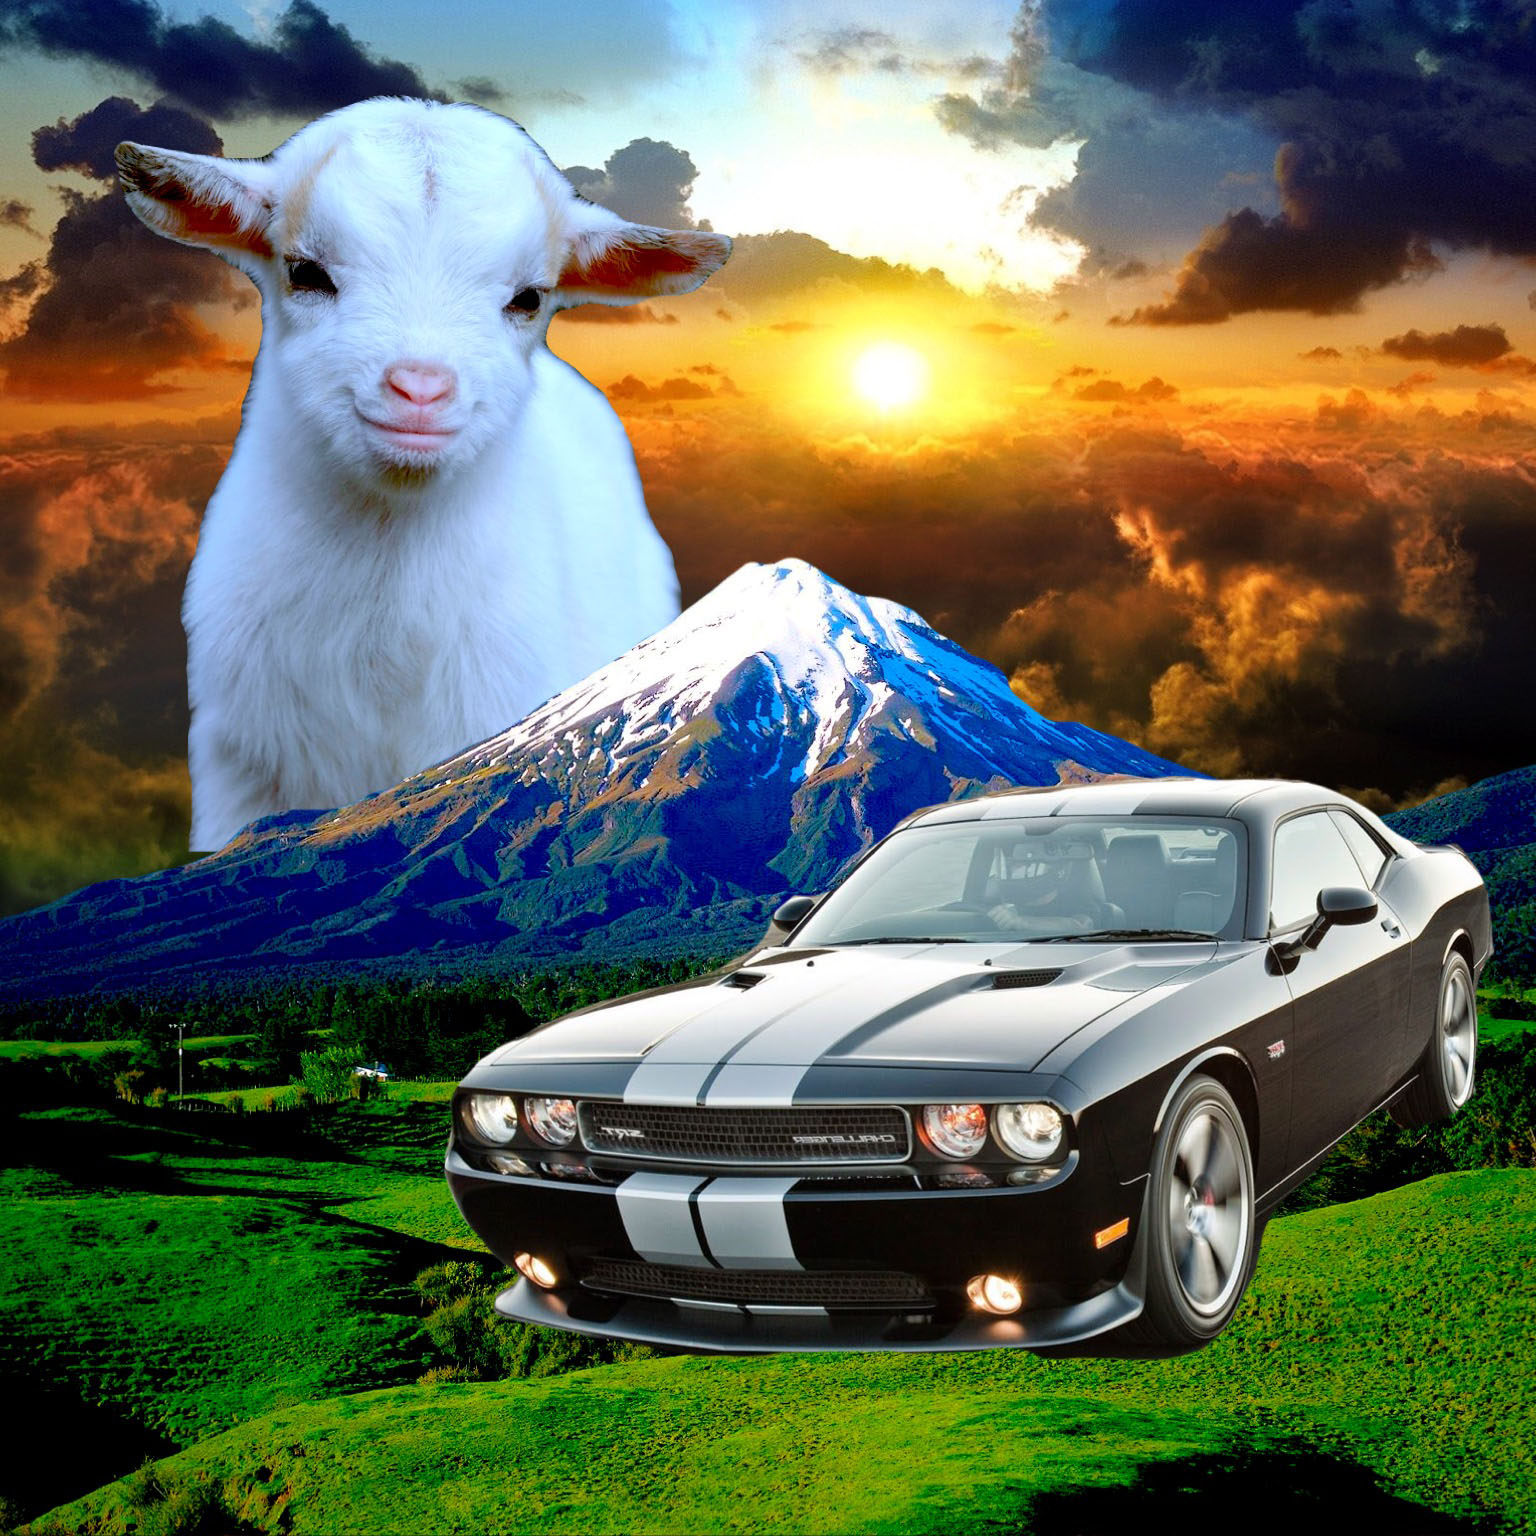 For Beth, Lamb and Challenger